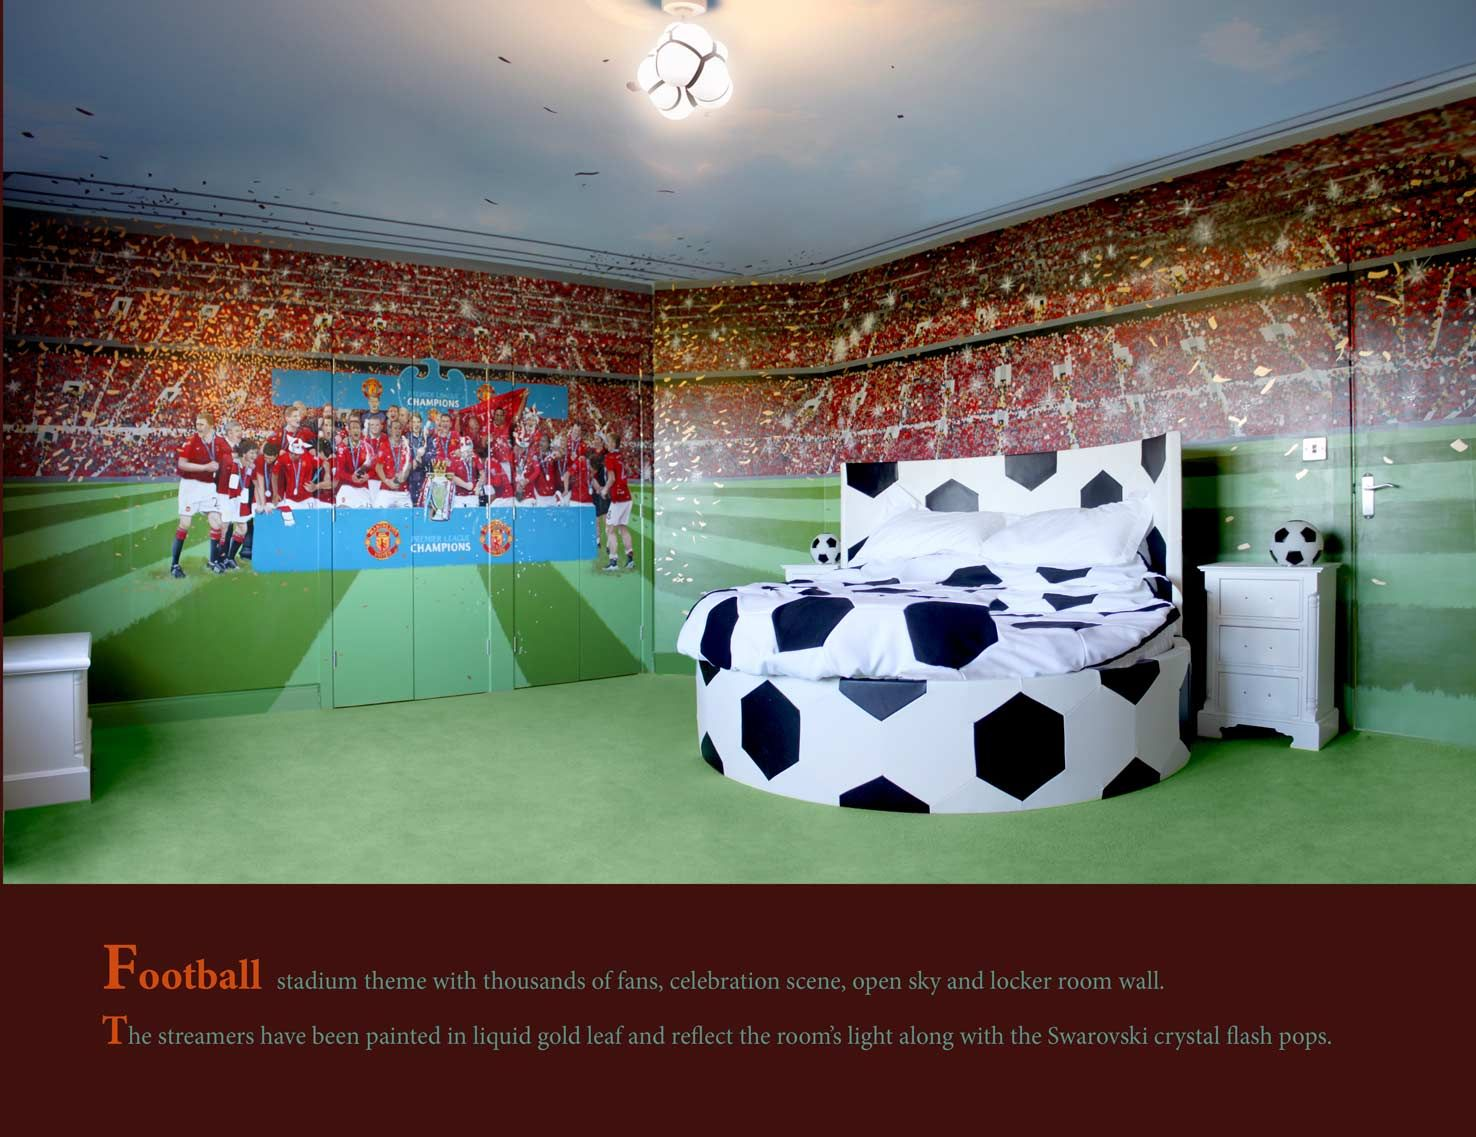 Merveilleux Football Themed Room Mural By OneRedShoe.co.uk Cheshire | Rileigh Room  Ideas | Pinterest | Football Themed Rooms, Soccer And Murals